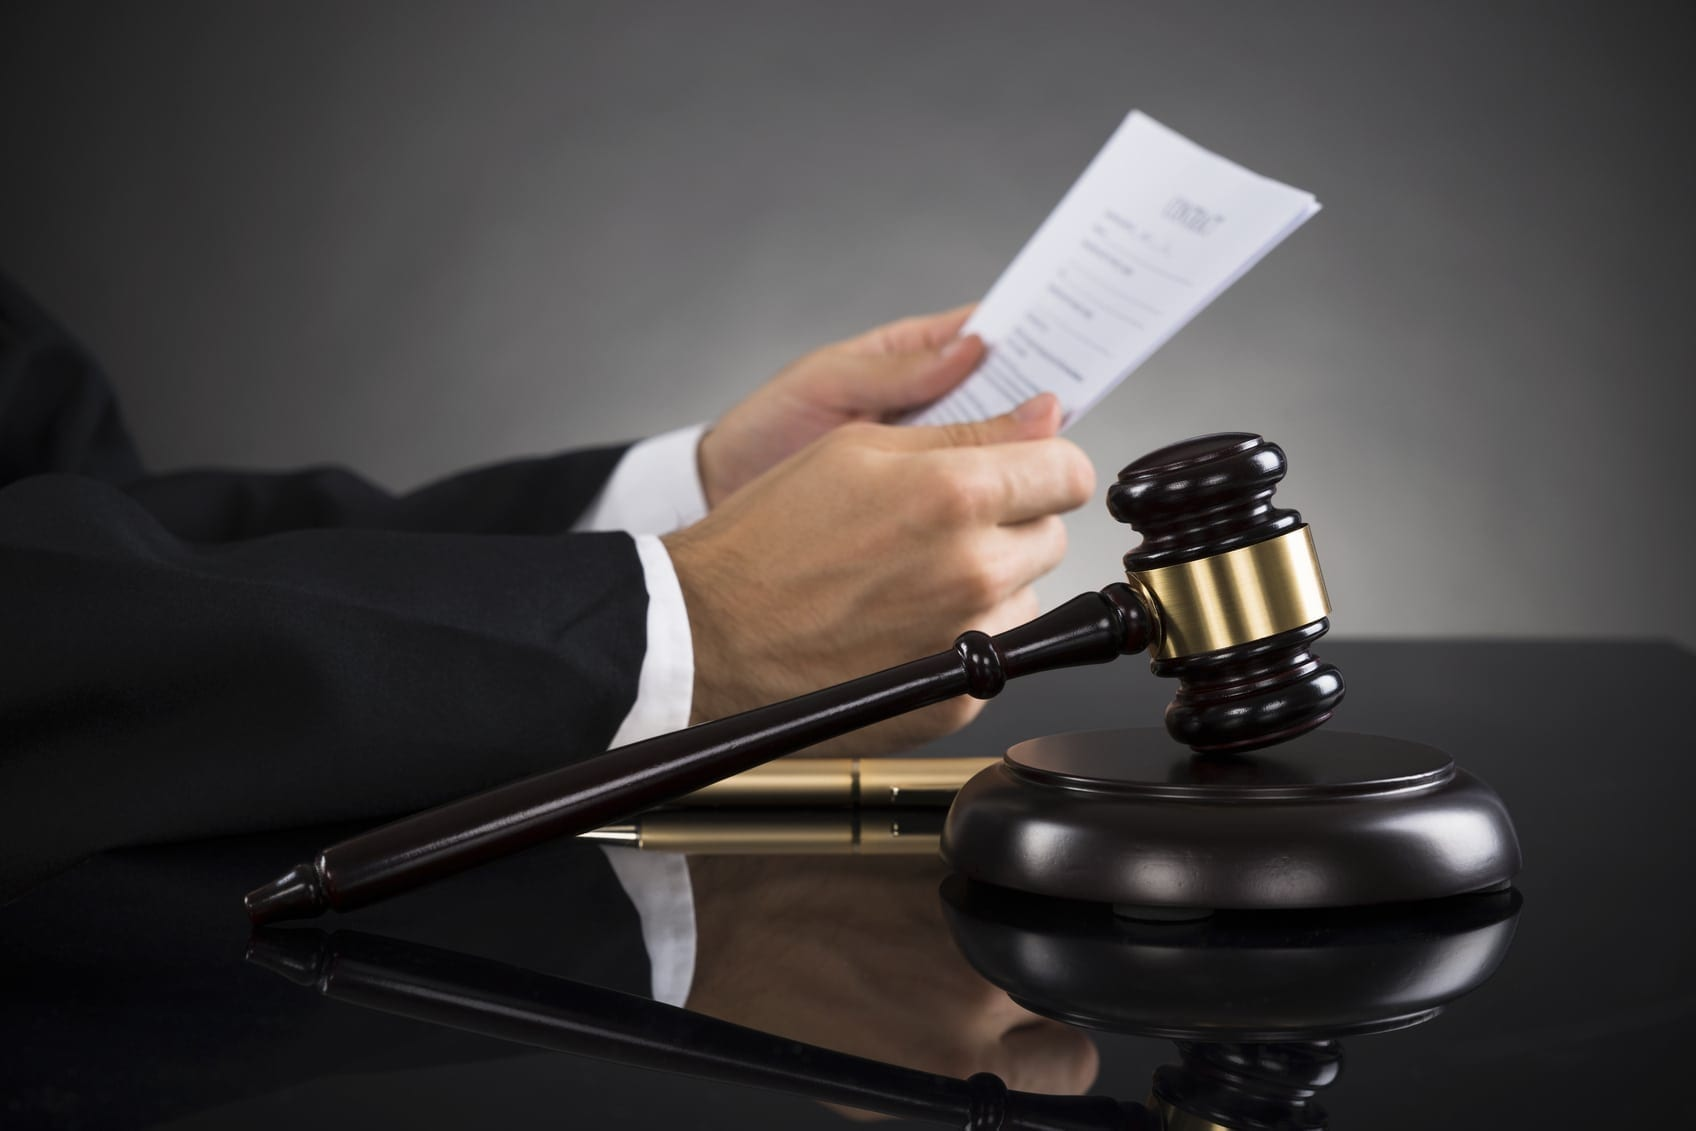 Judge Reviewing Legal Documents Stock Photo